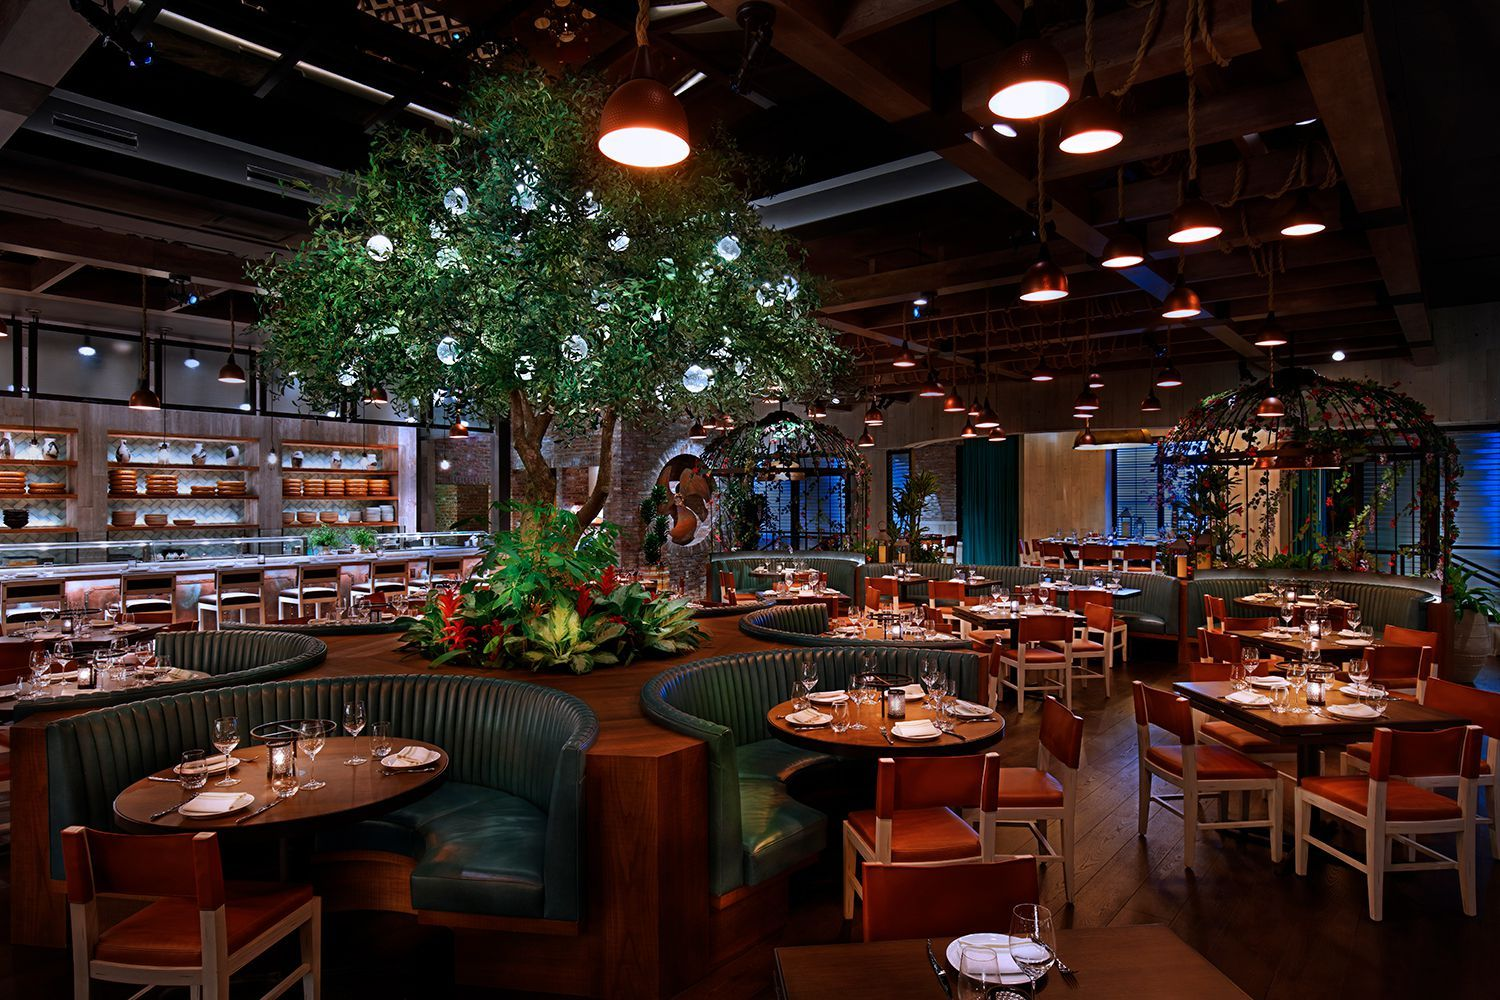 The 10 Best New Restaurants In Las Vegas To Check Out In